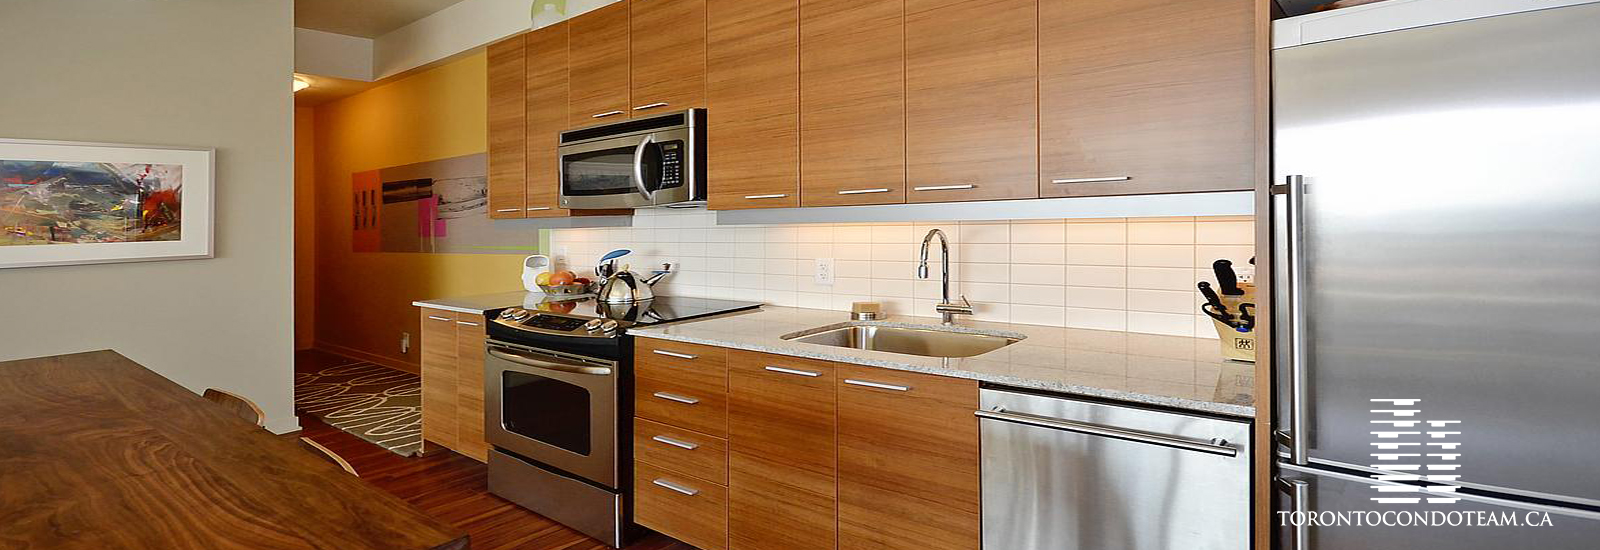 569 King Street East Condos For Sale